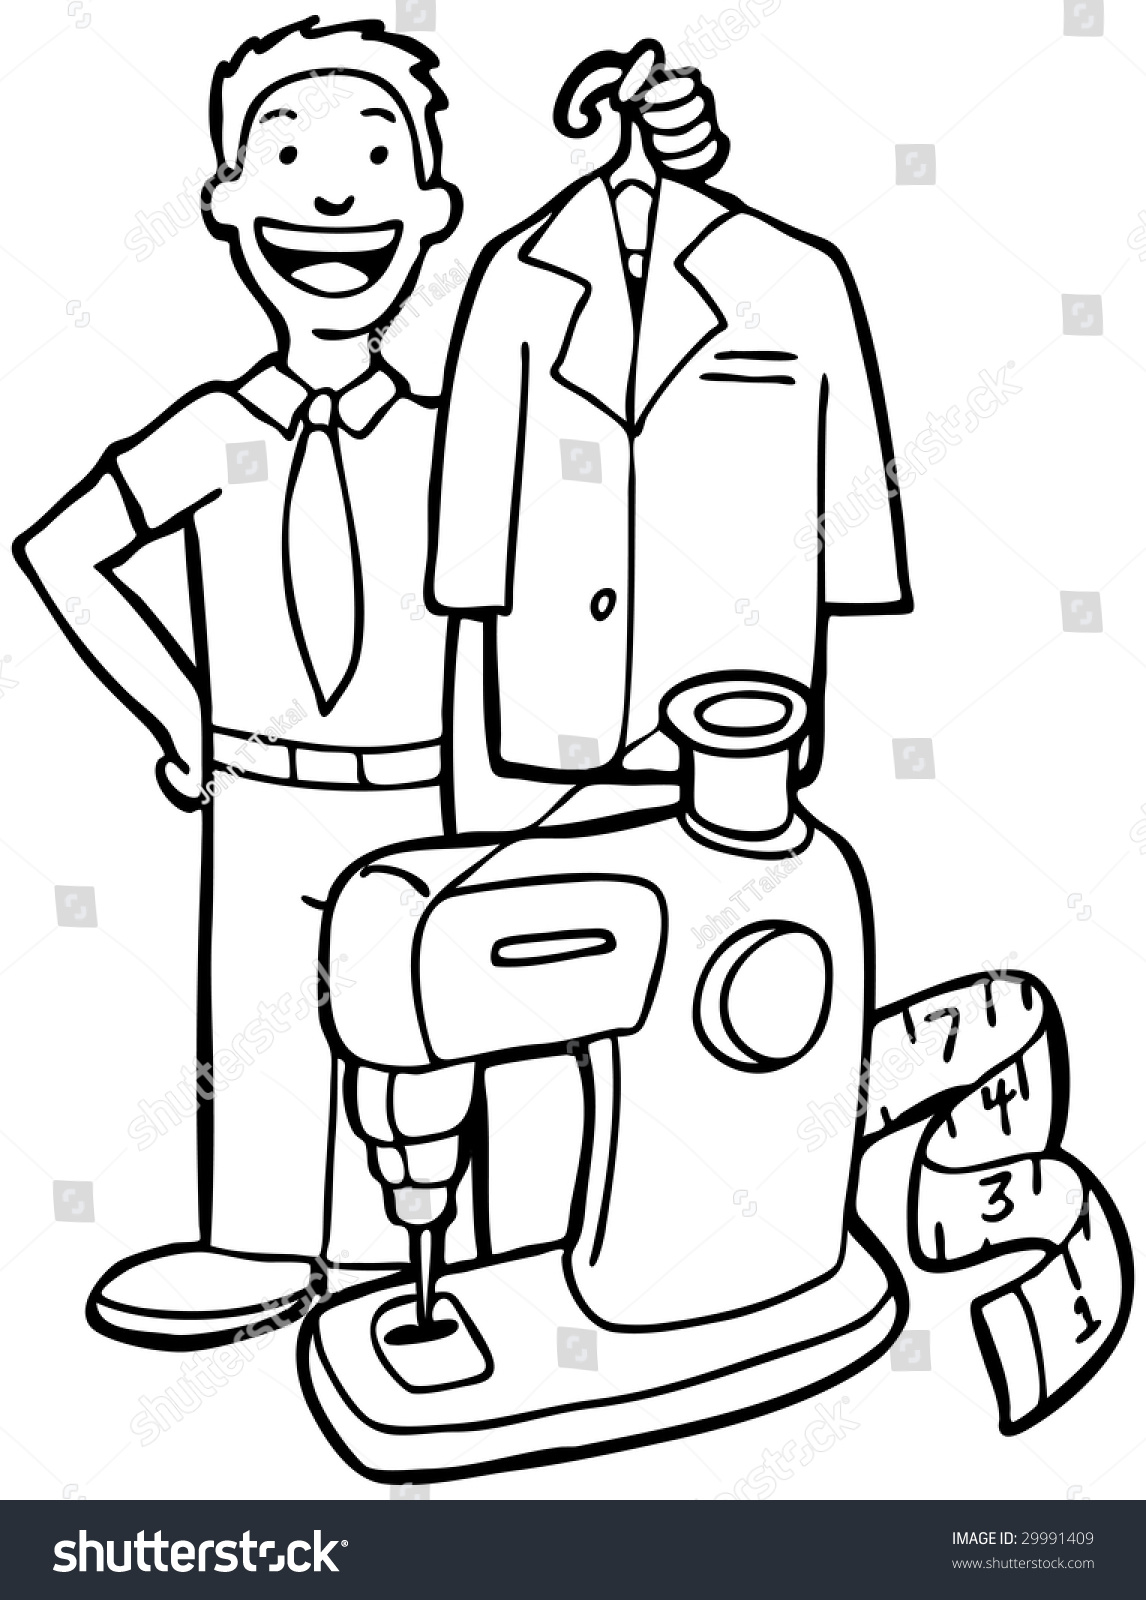 Dry Cleaning Service Stock Illustration 29991409 - Shutterstock